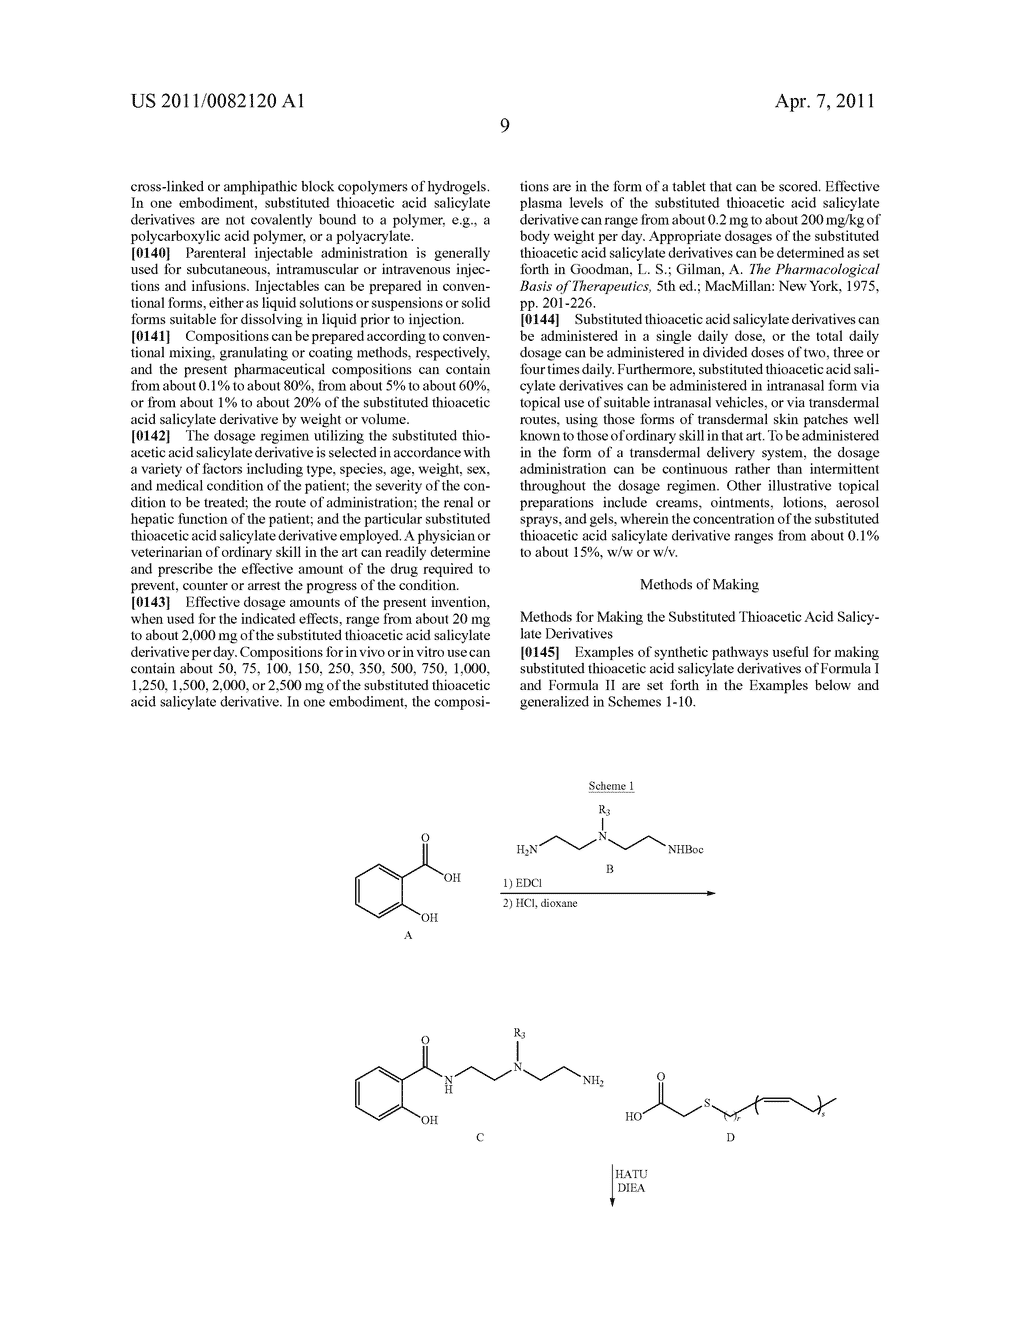 SUBSTITUTED THIOACETIC ACID SALICYLATE DERIVATIVES AND THEIR USES - diagram, schematic, and image 10